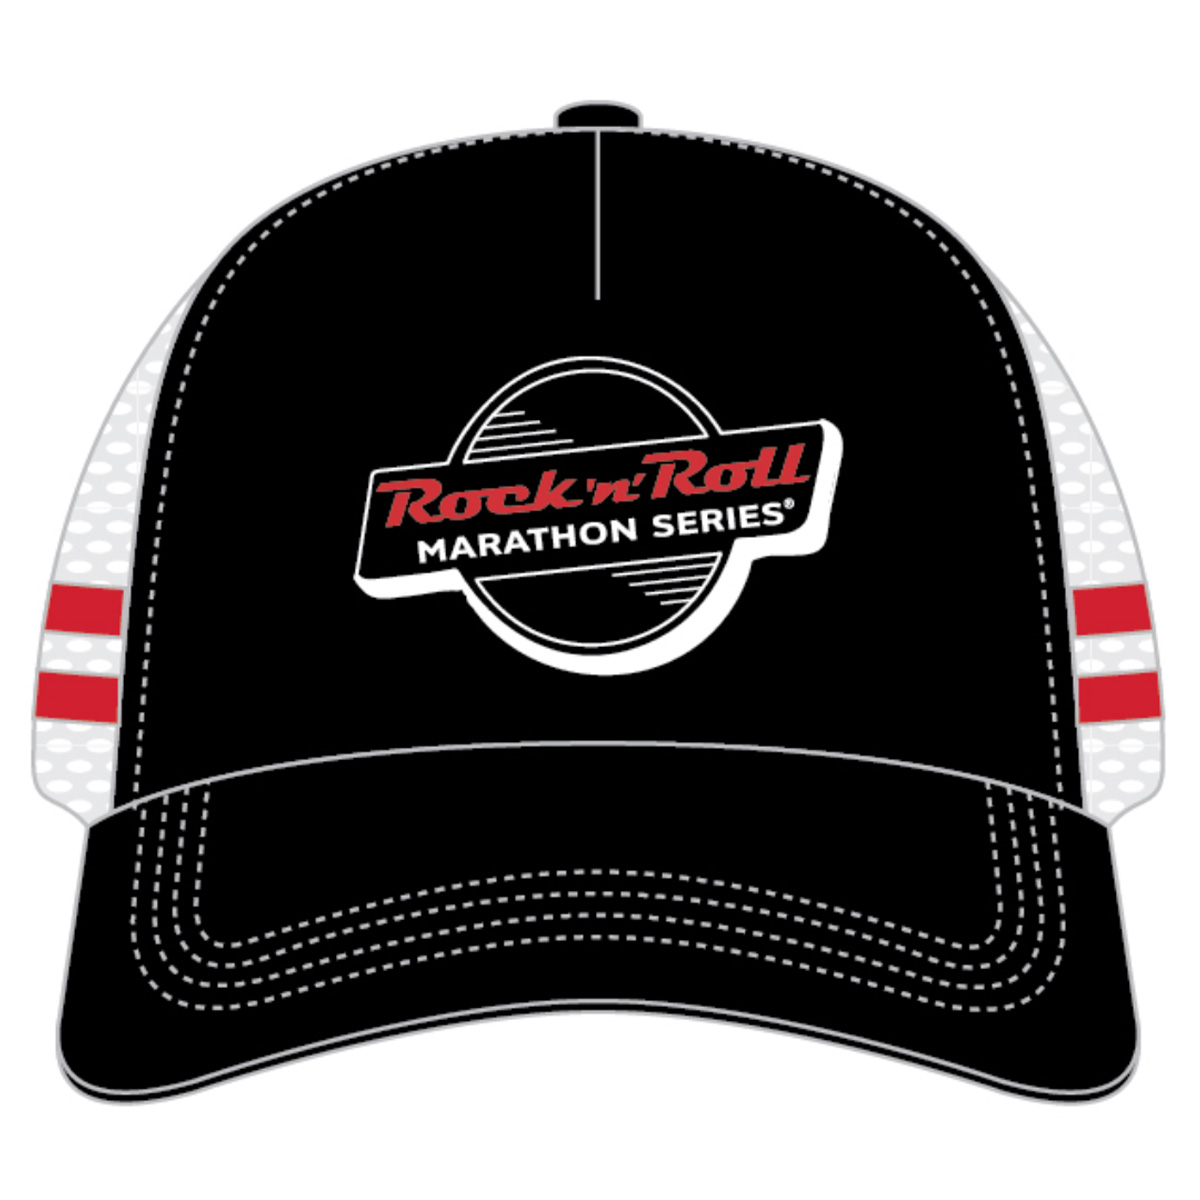 ROCK N ROLL MARATHON SERIES RETRO TRUCKER